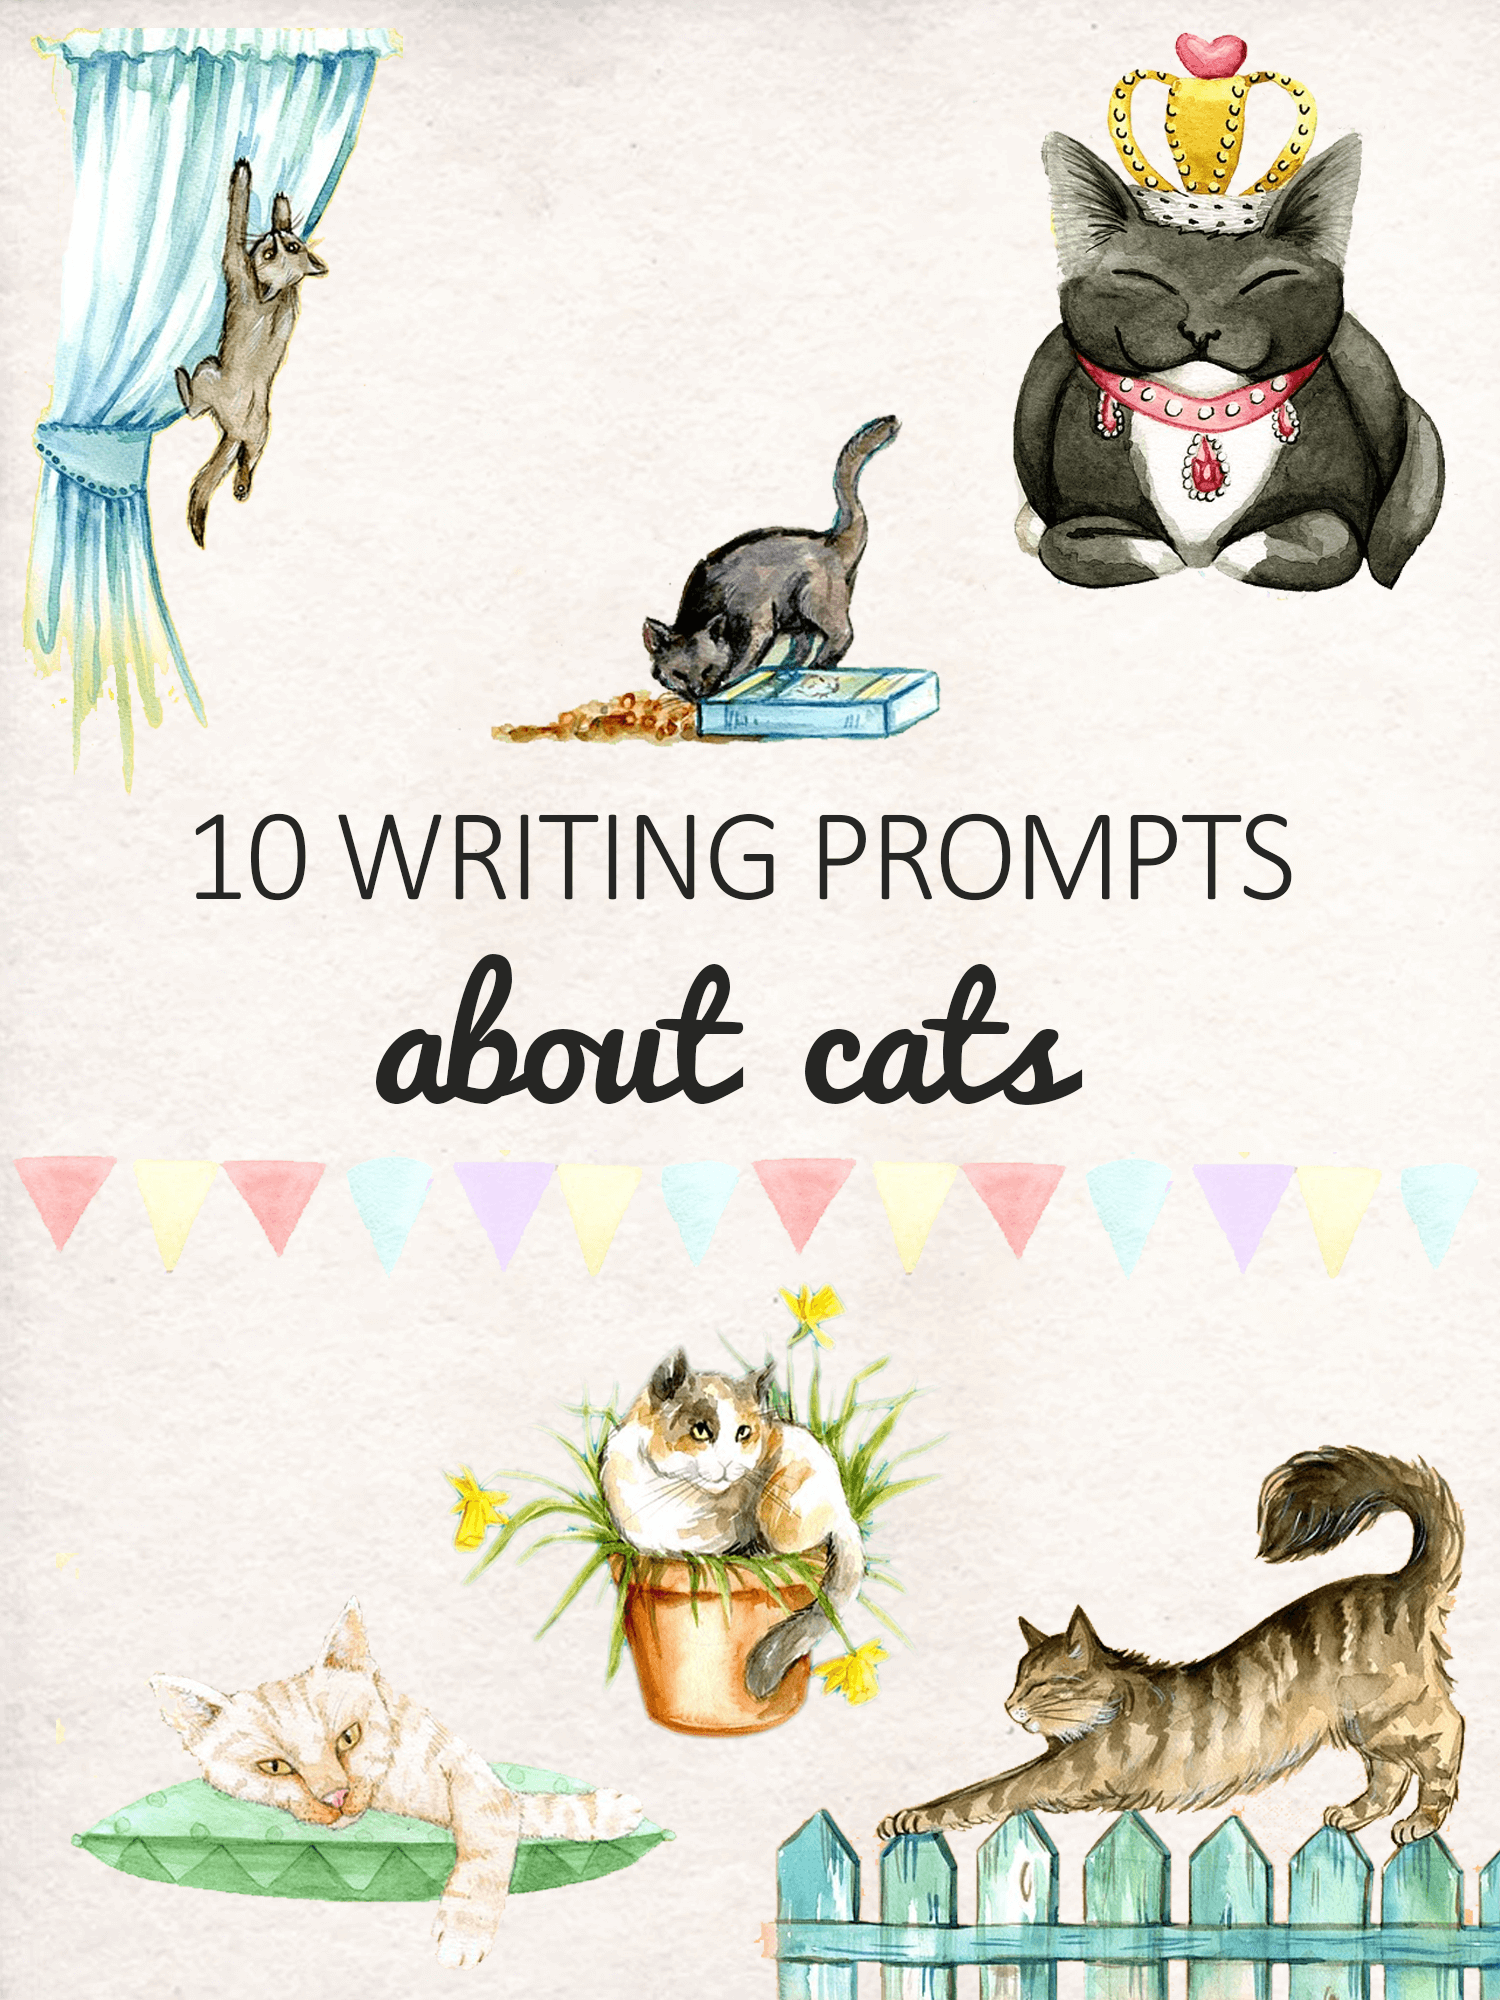 10 Writing Prompts about cats for kids